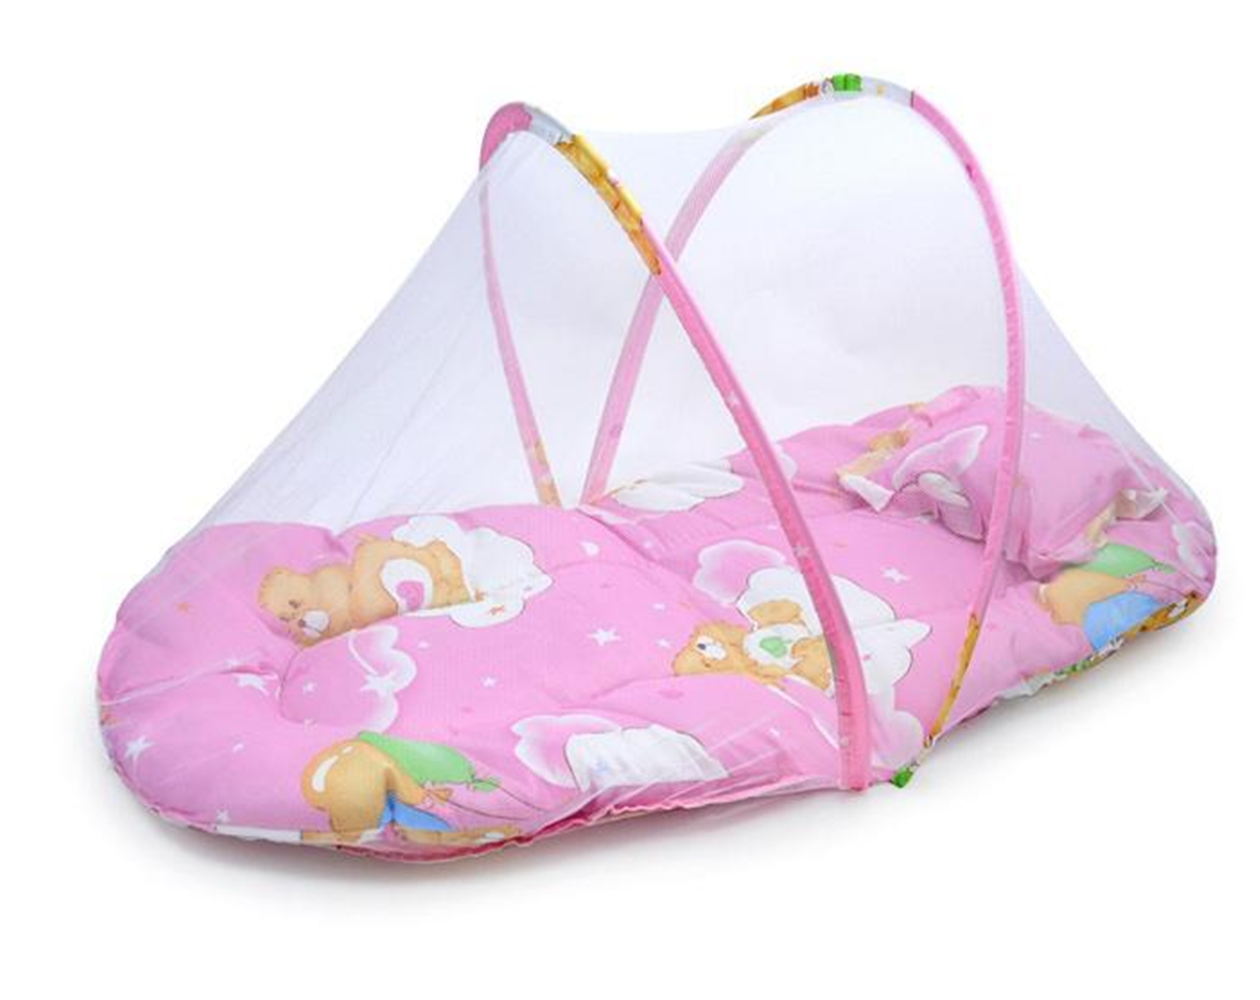 Ordinaire Protect From Mosquito, Flies, Insects And Other Annoying, Giving Your Baby  A Sound Sleep. Finely Woven Netu0026 Chemical Free. Soft U0026 Comfortable Cushion